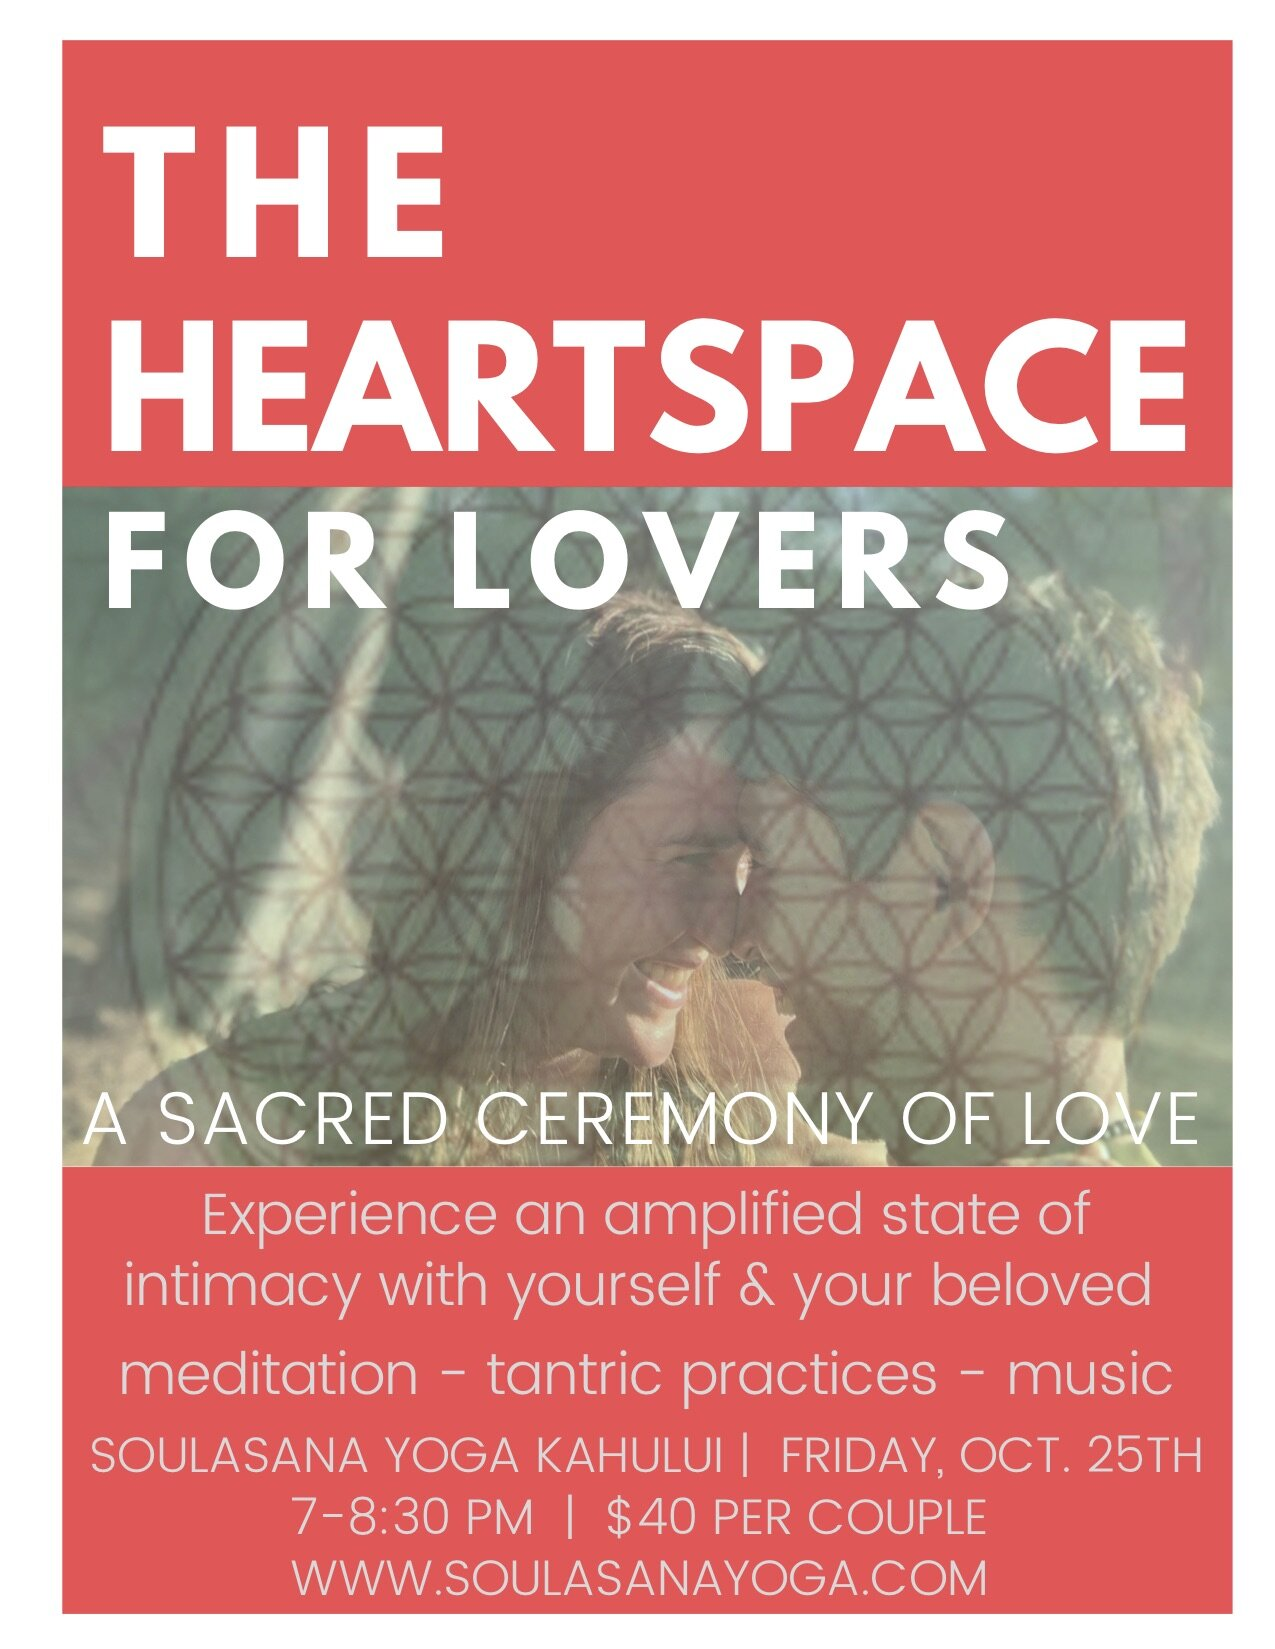 The heartspace for lovers (1).jpg